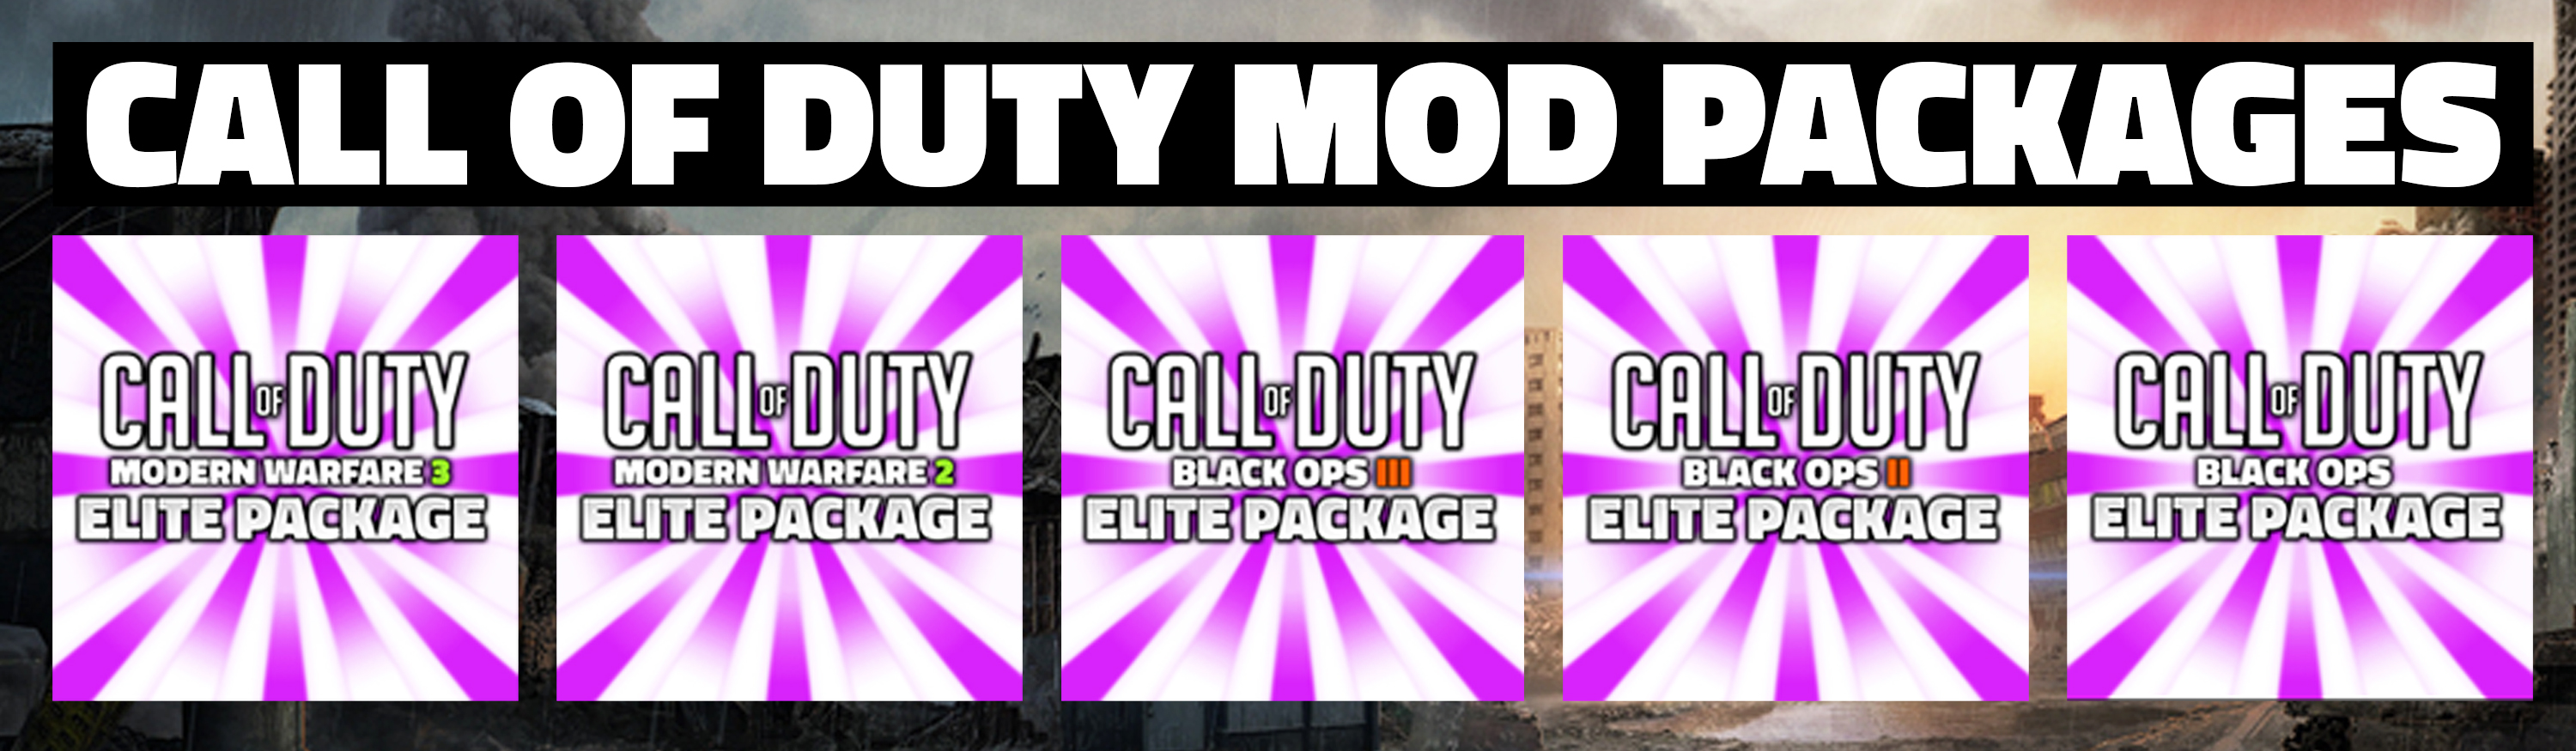 L321 Mods - Best place for GTA 5 Mods, Call of Duty Mods